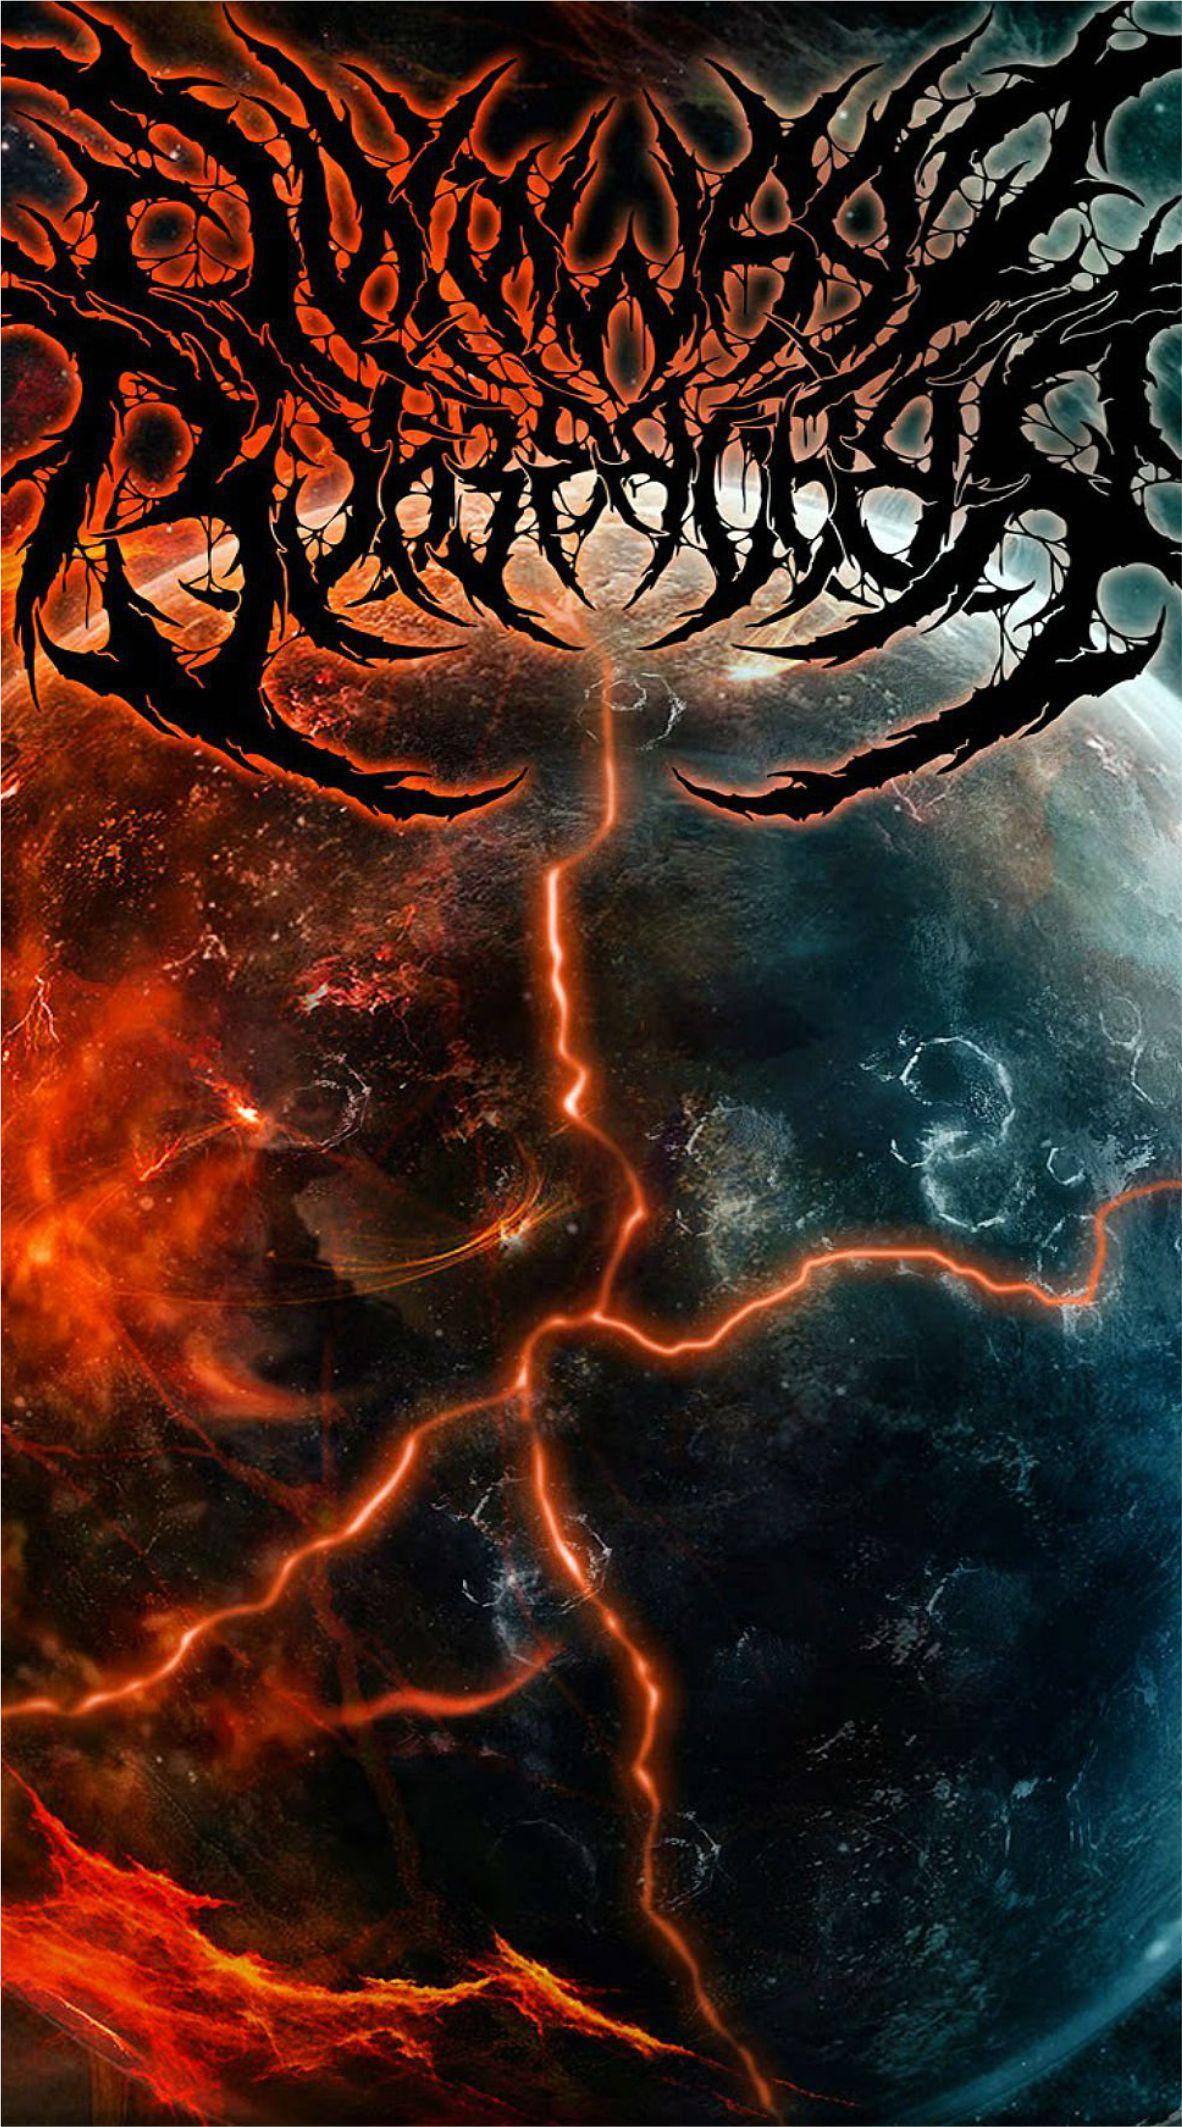 Black Metal Wallpaper For Android APK Download